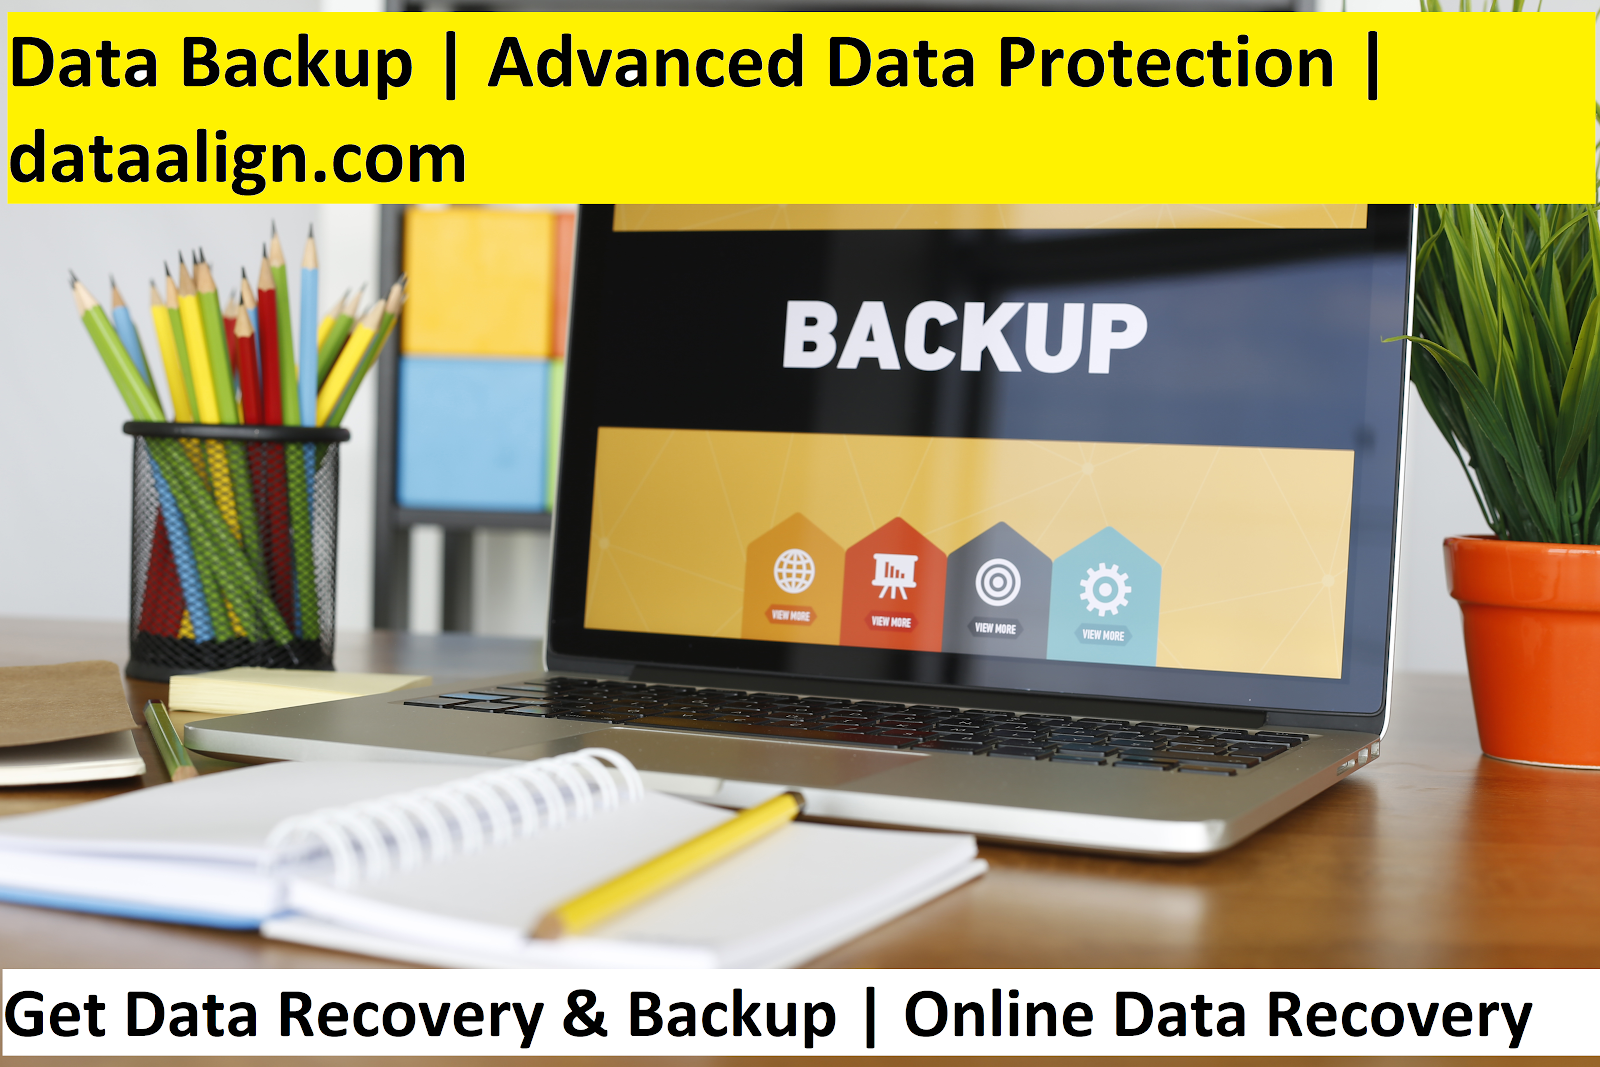 Step by step solution to save your data on online cloud backup